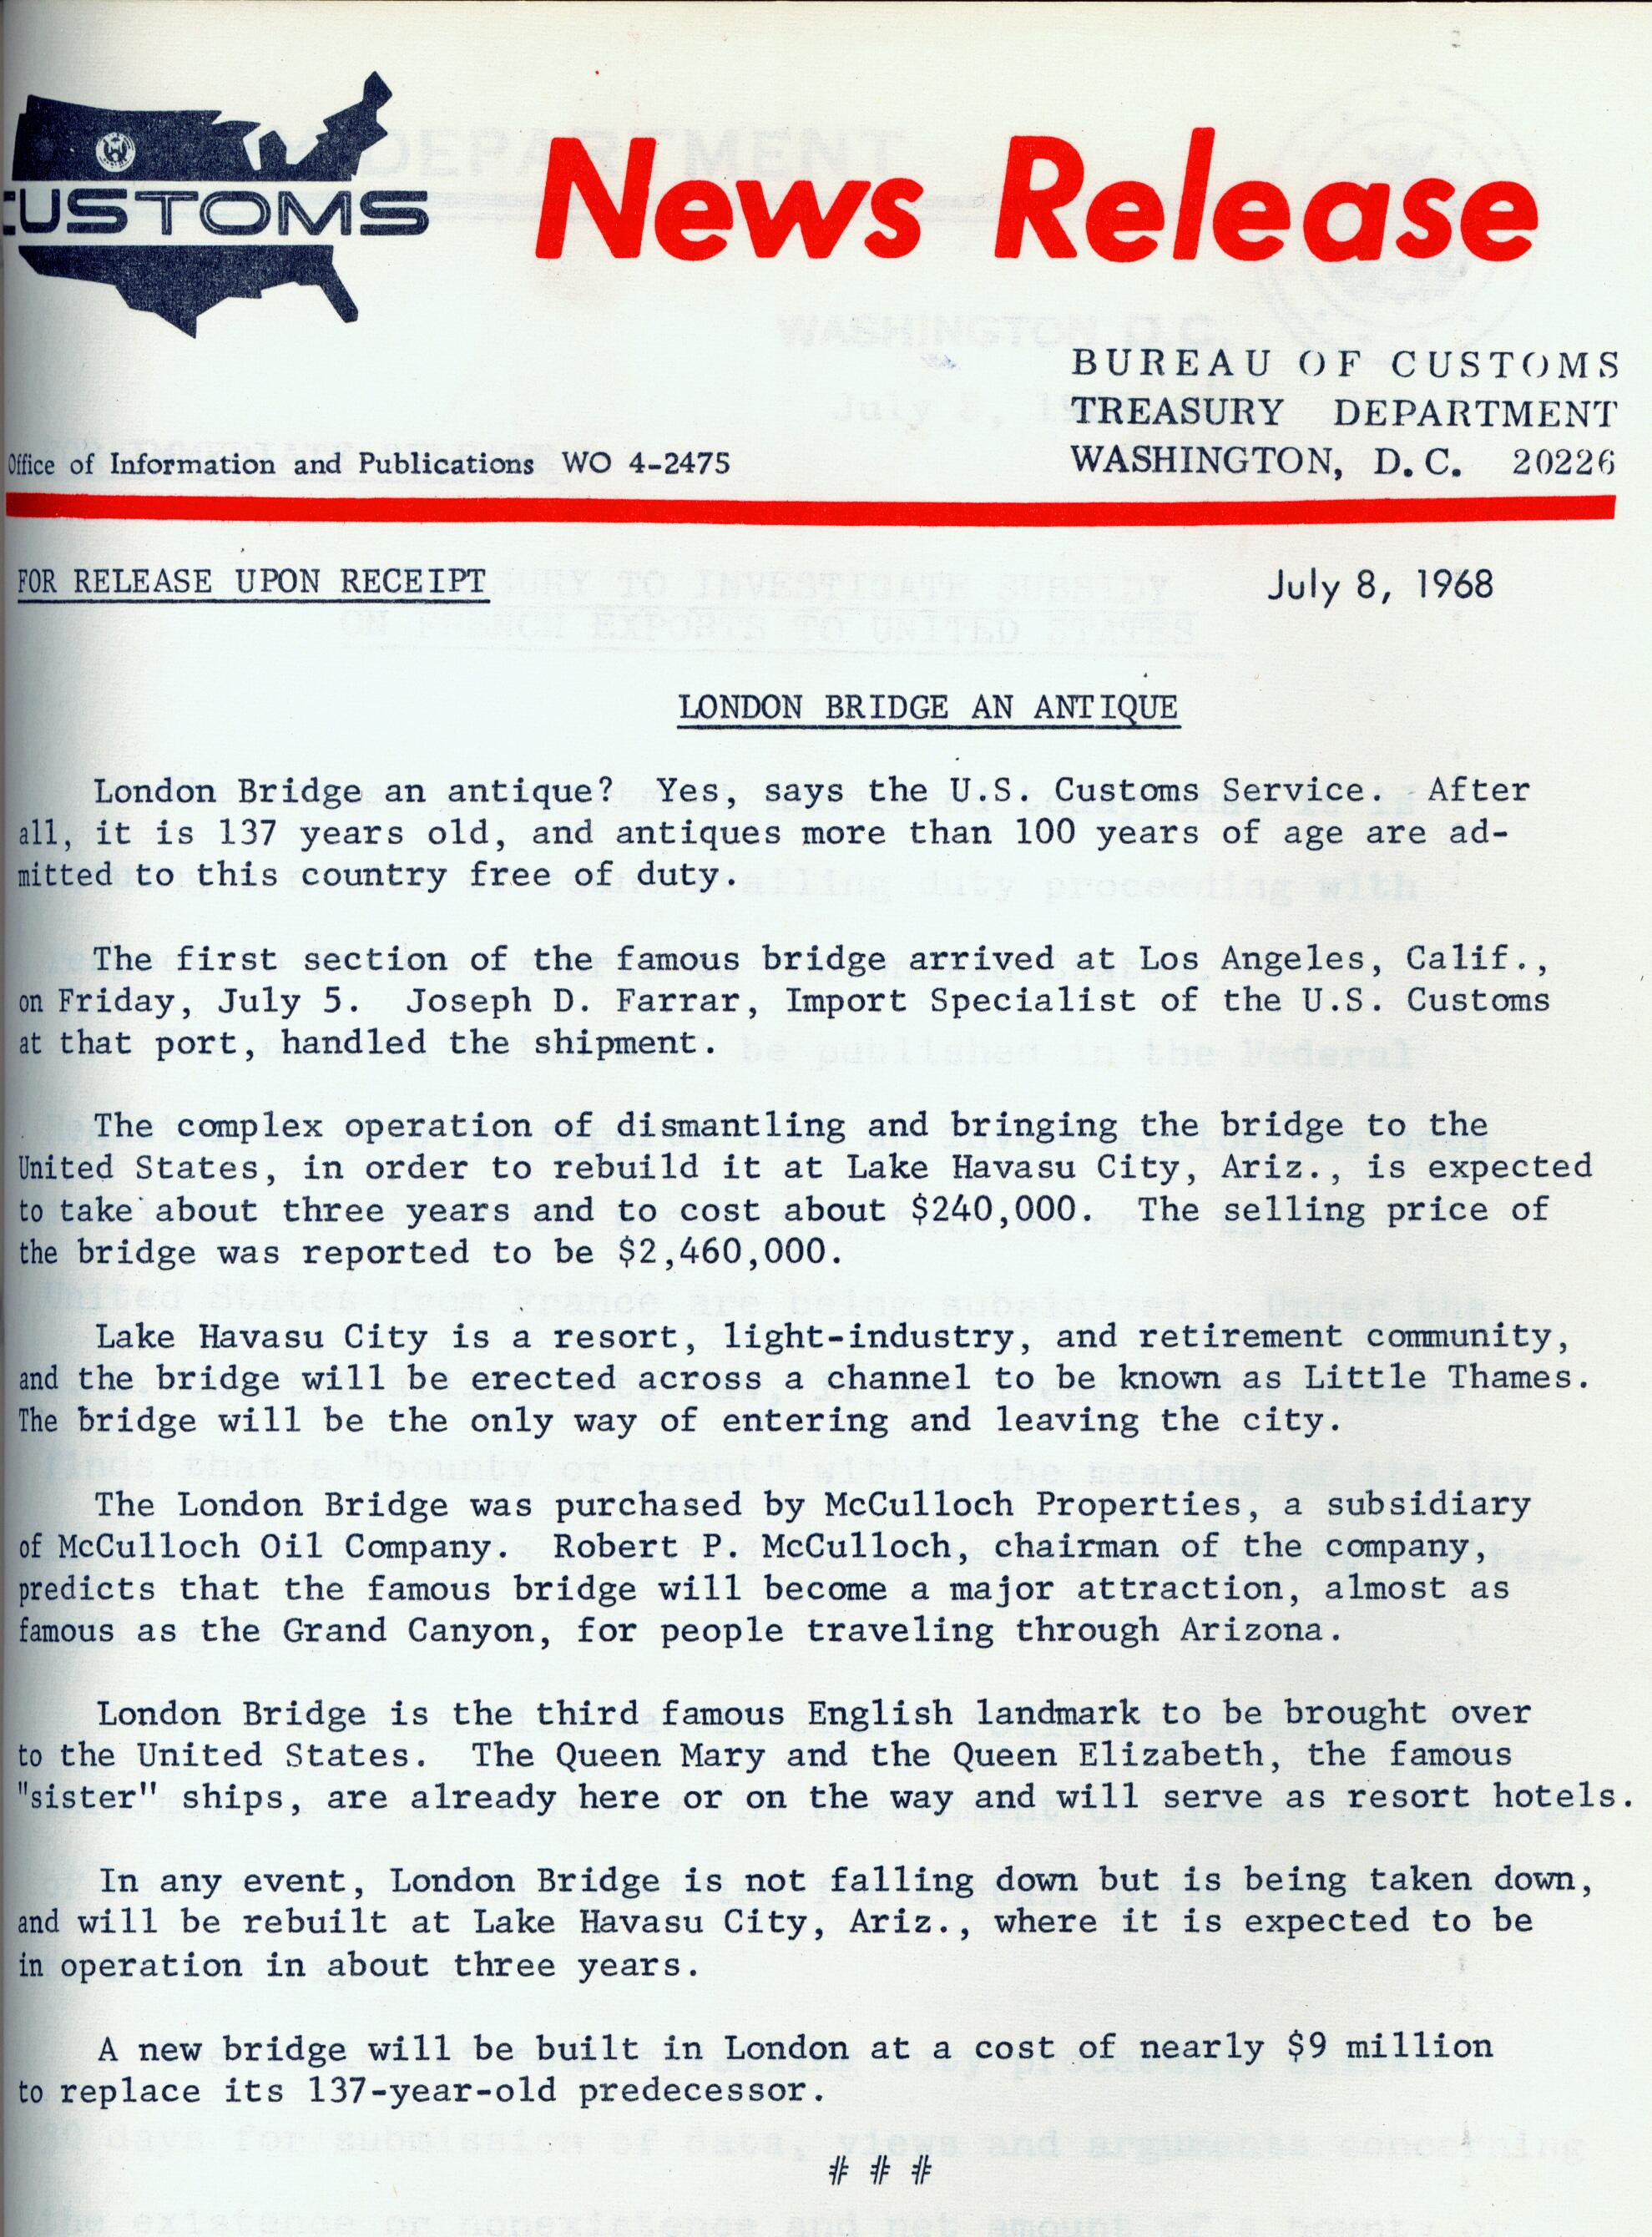 U.S. Customs Service news release from July 8, 1968 discussing that London Bridge was declared an antique. CBP Historical Collections.